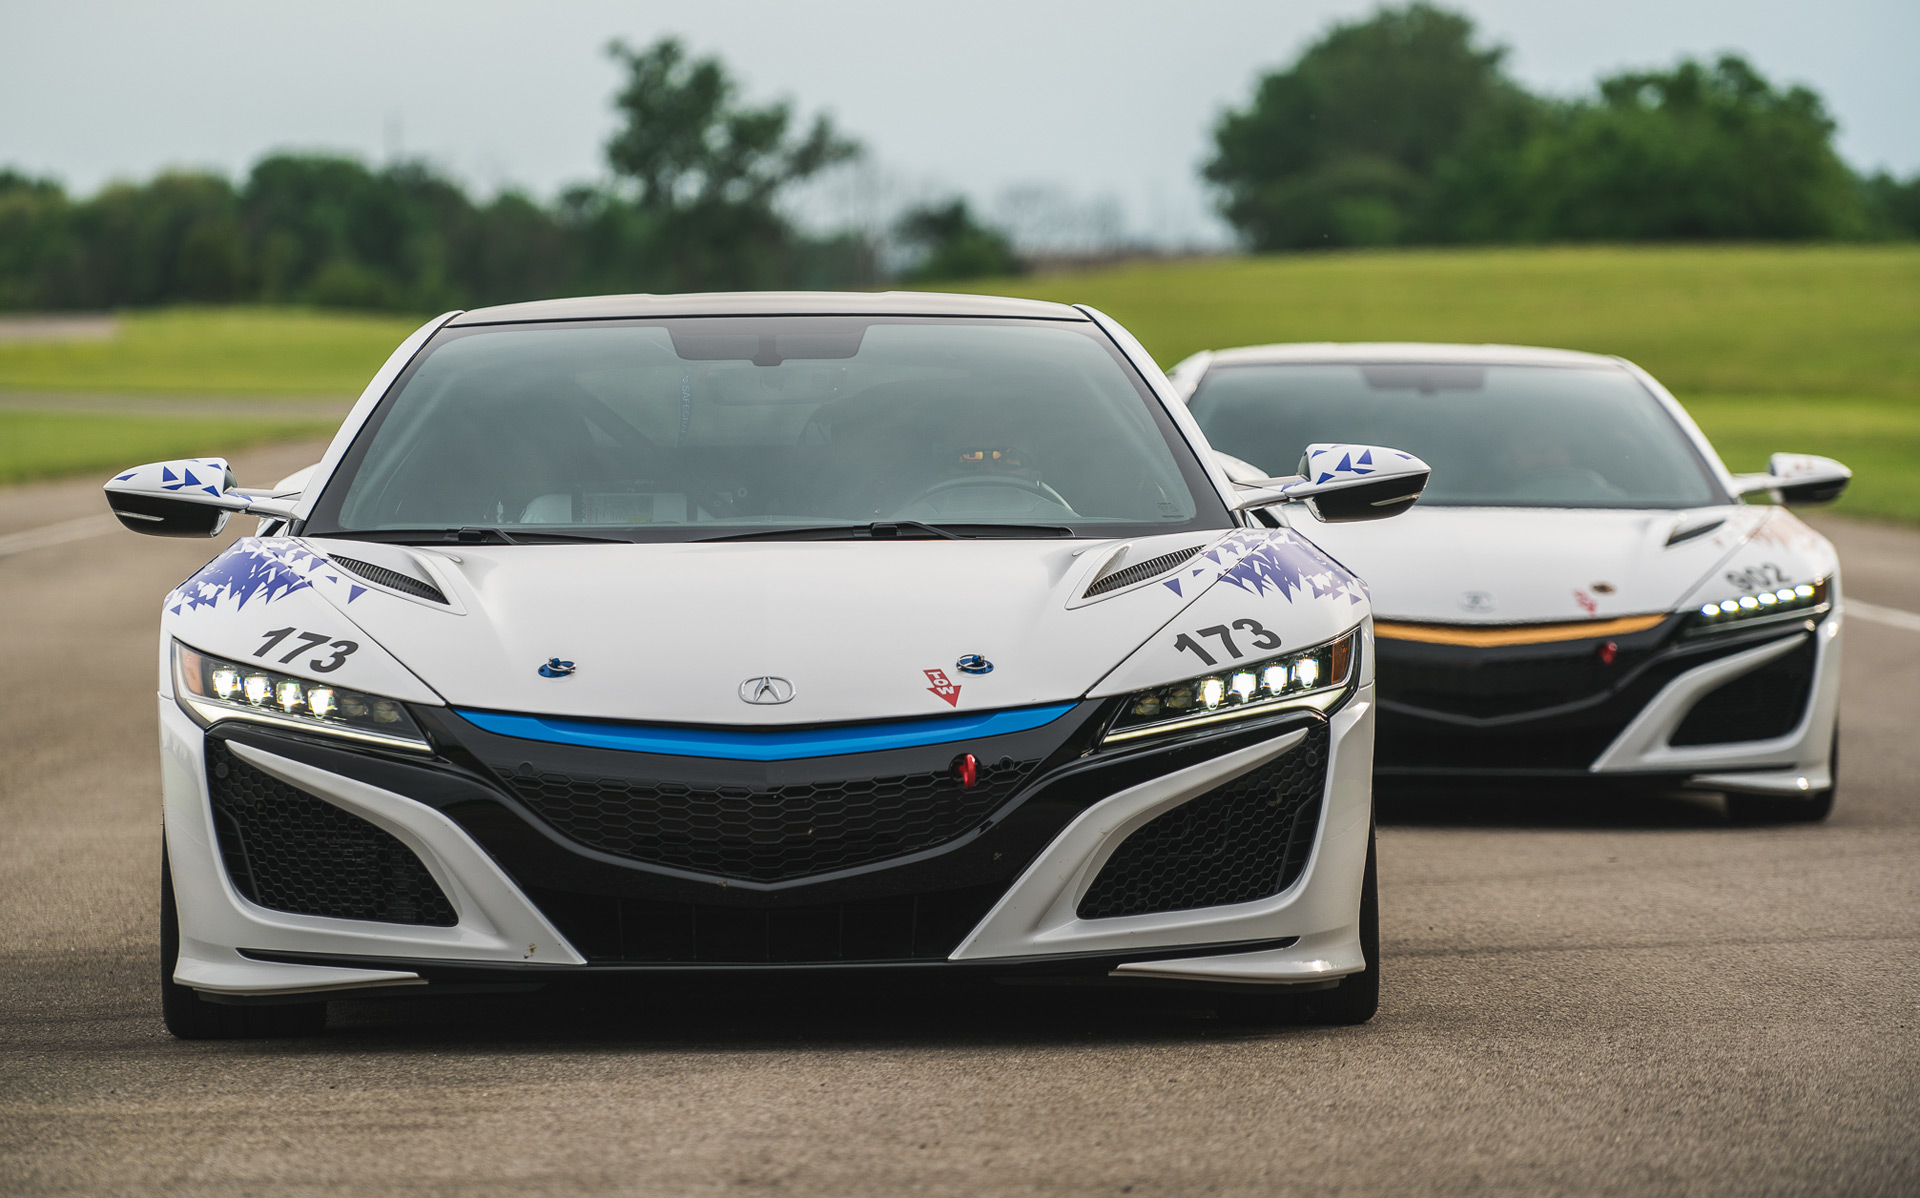 All-electric Acura NSX to tackle 2016 Pikes Peak Hill Climb